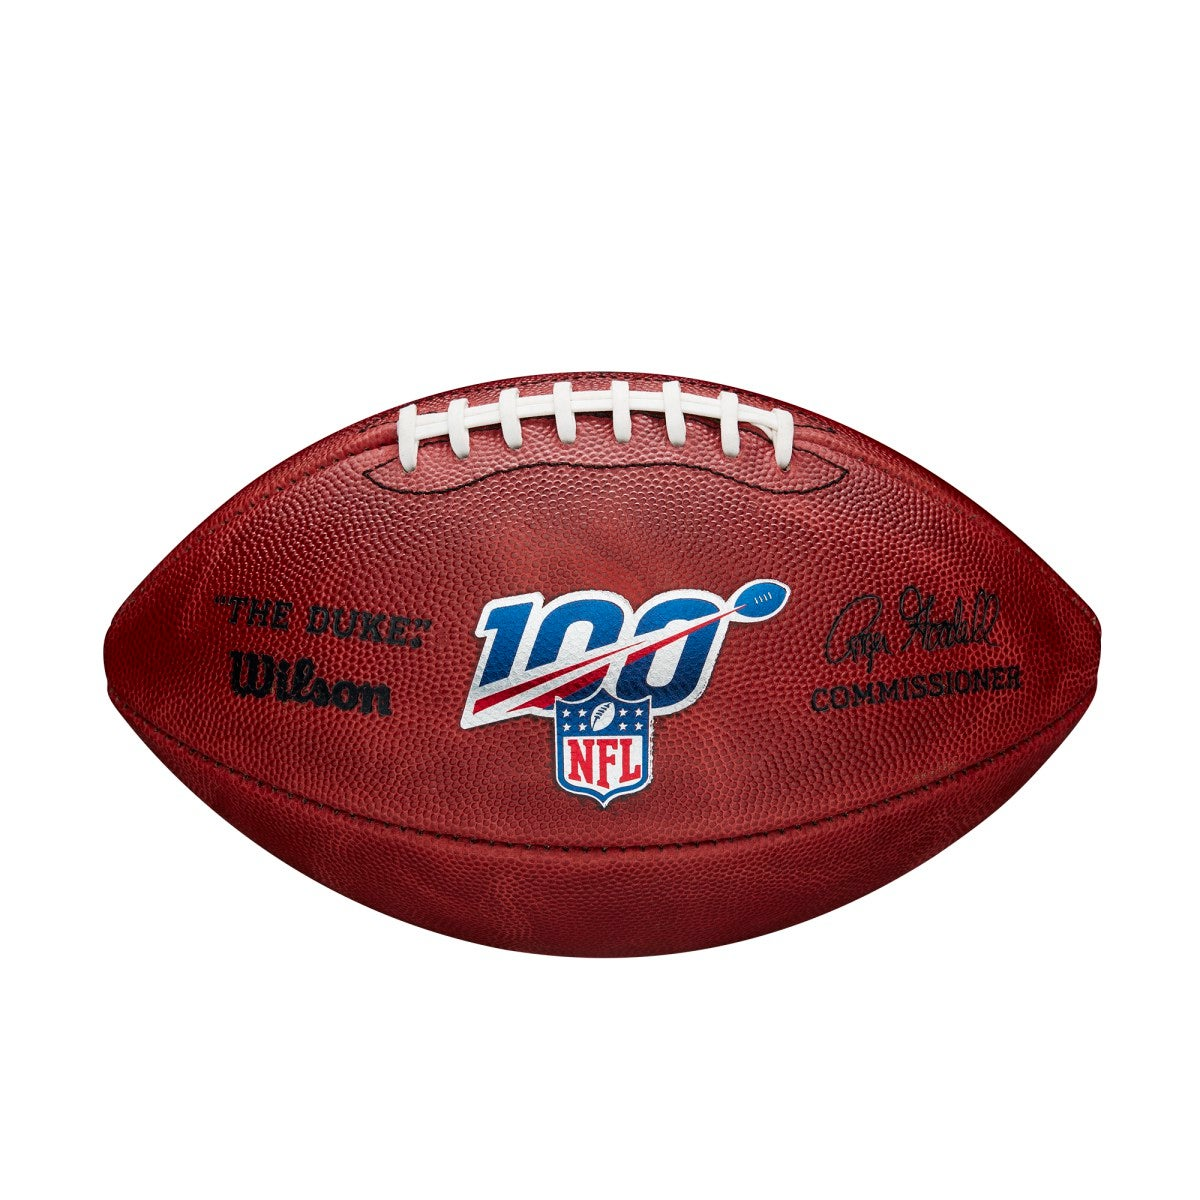 NFL 100 The Duke Football